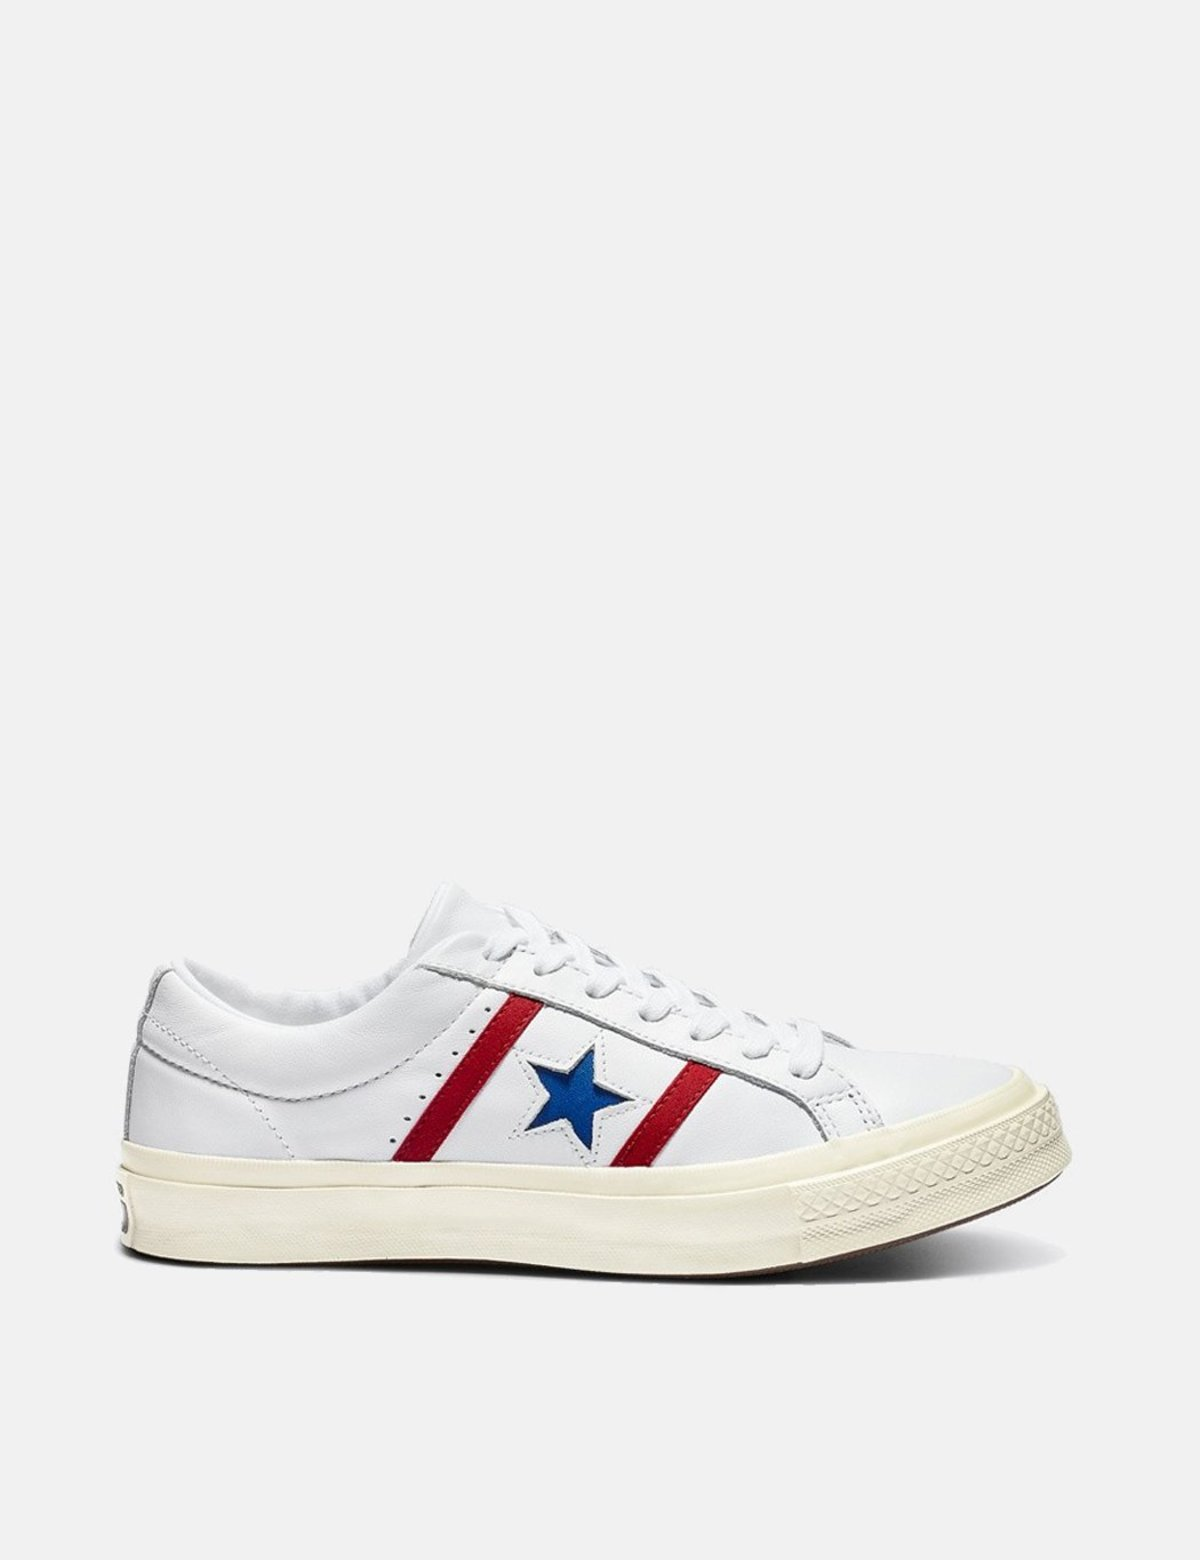 Converse One Star Academy Low Top (164390C) - White/Enamel Red/Blue